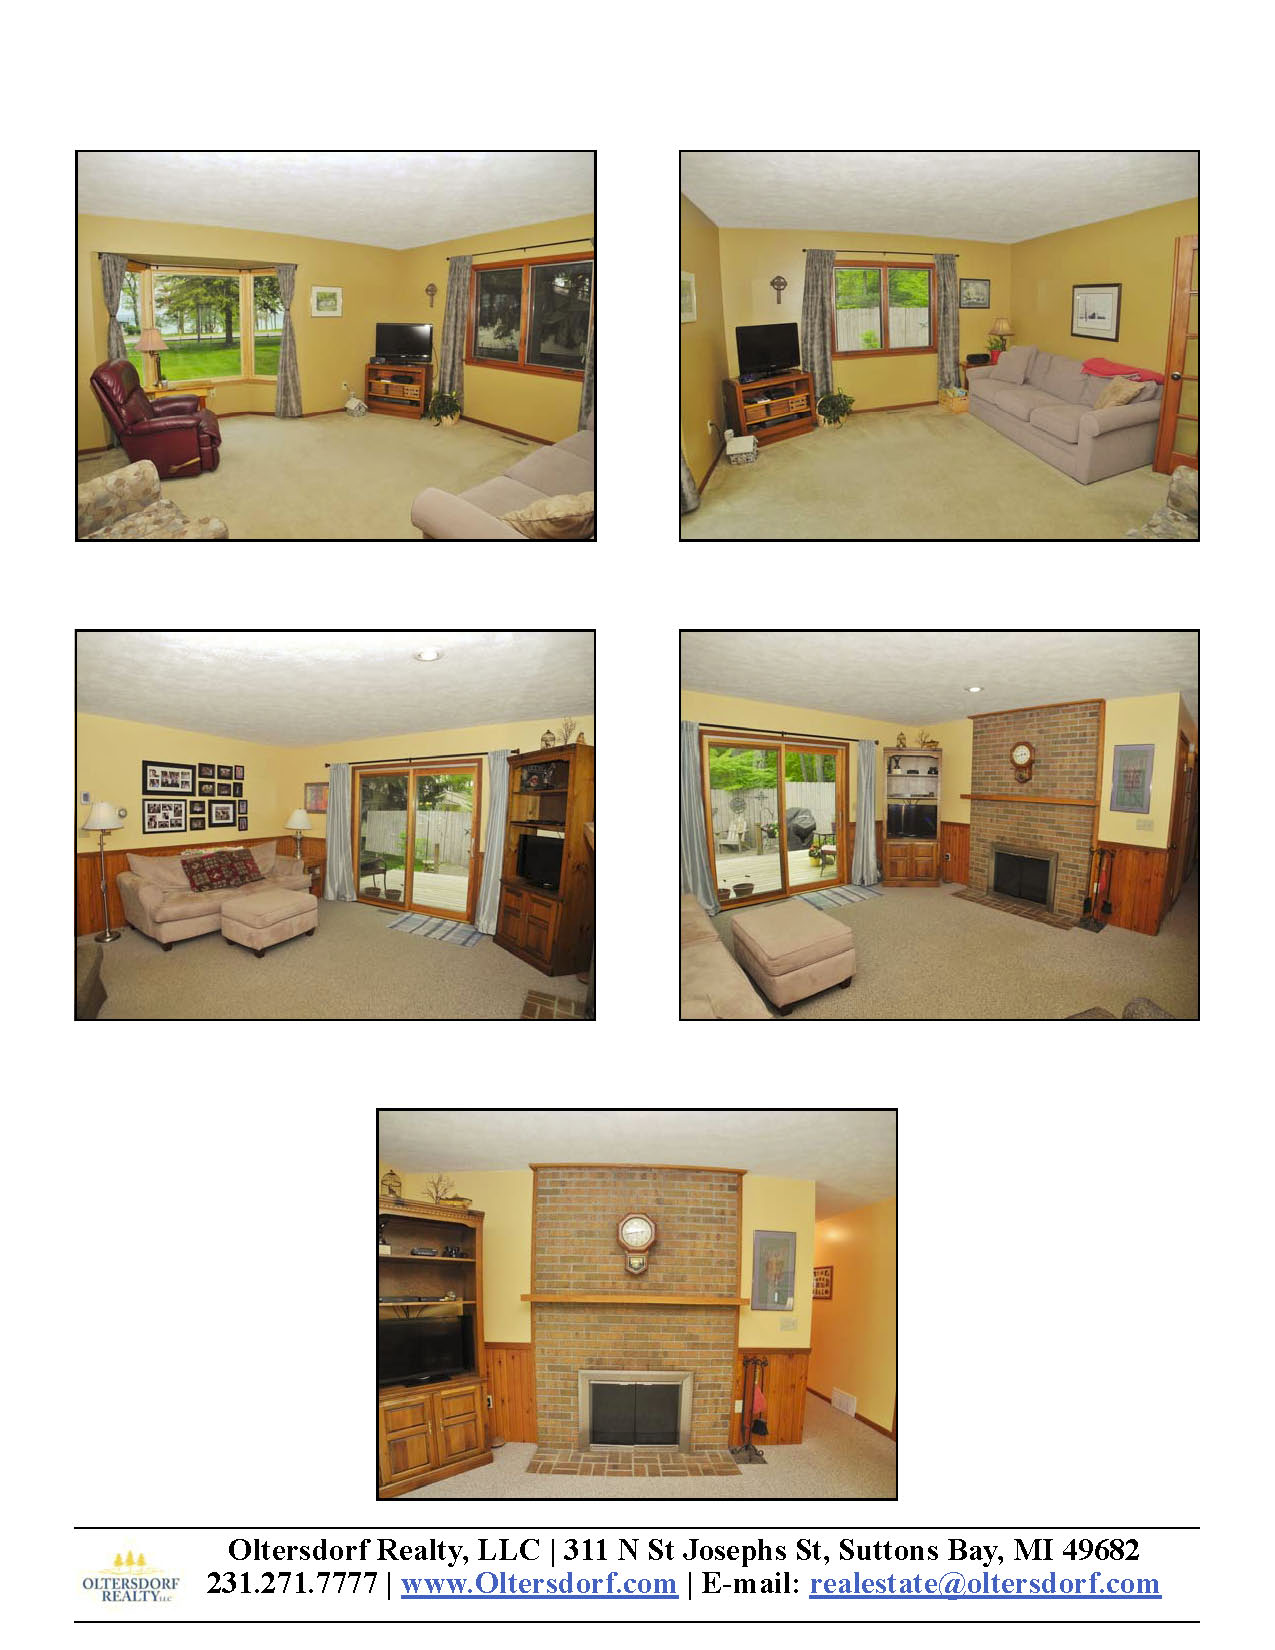 10142 S West Bay Shore Drive, Traverse City, MI - For sale by Oltersdorf Realty LLC - Marketing Packet (4).jpg